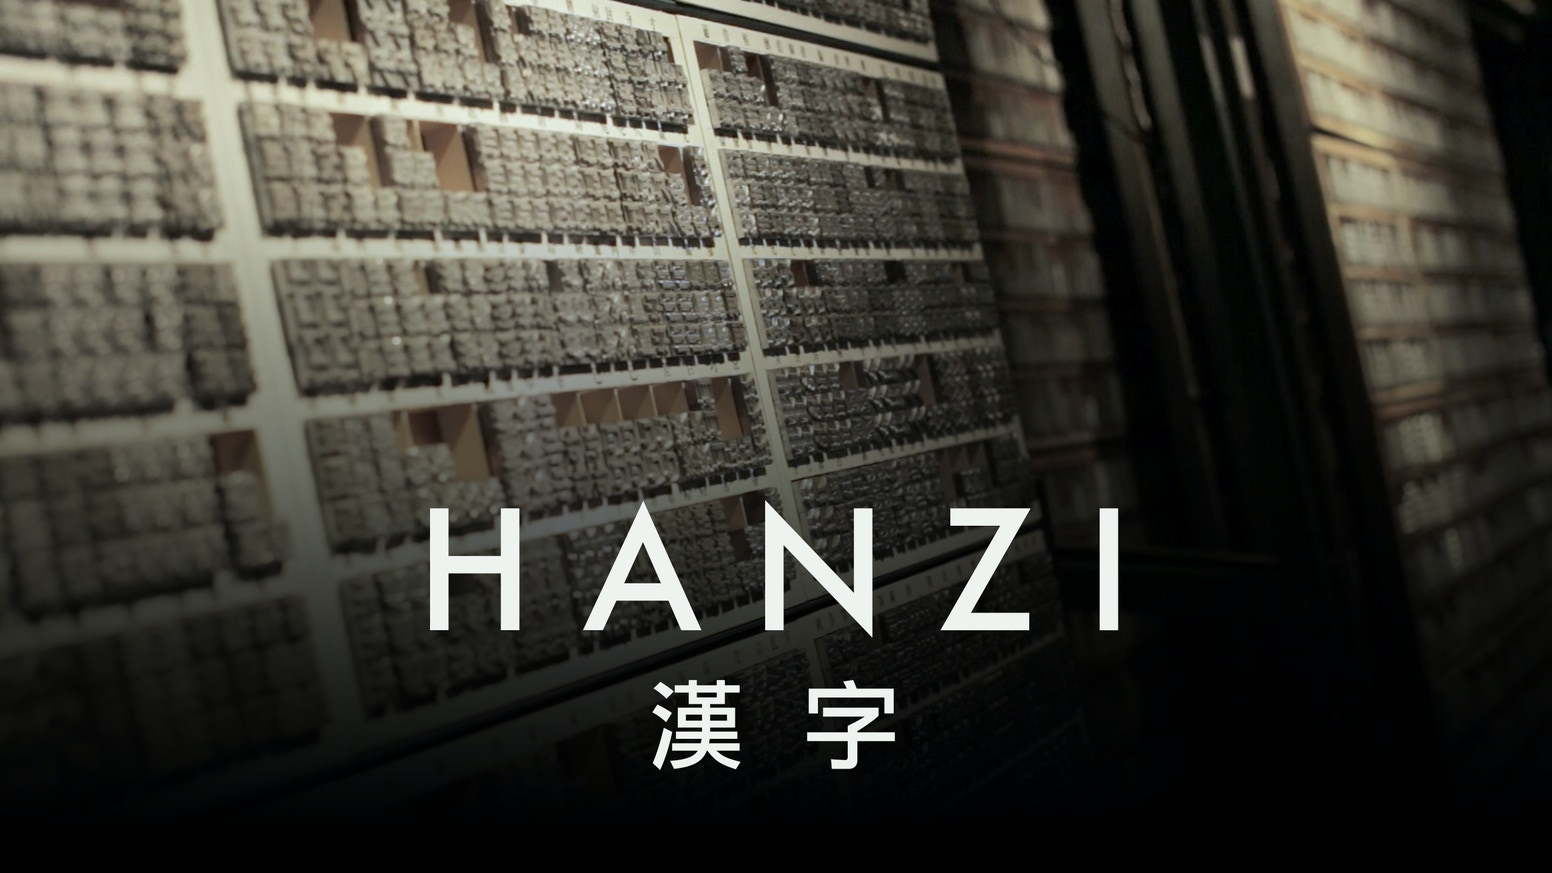 Hanzi is a documentary exploring international design, visual culture and identity through the lens of modern Chinese typography.